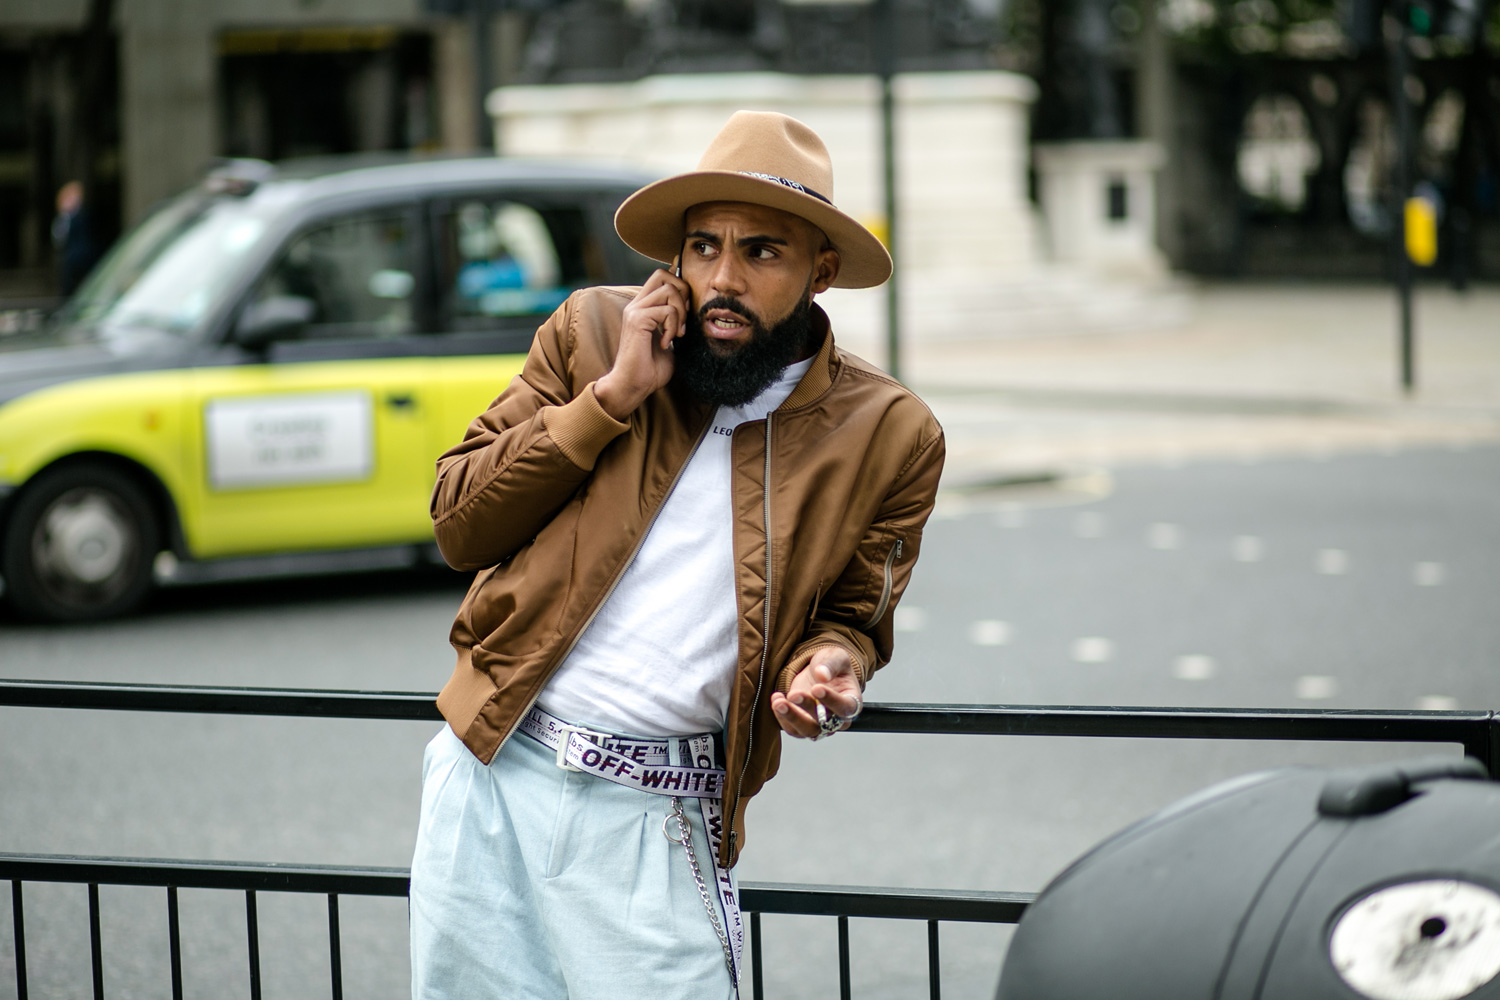 083-London-Mens-Street-Style.jpg